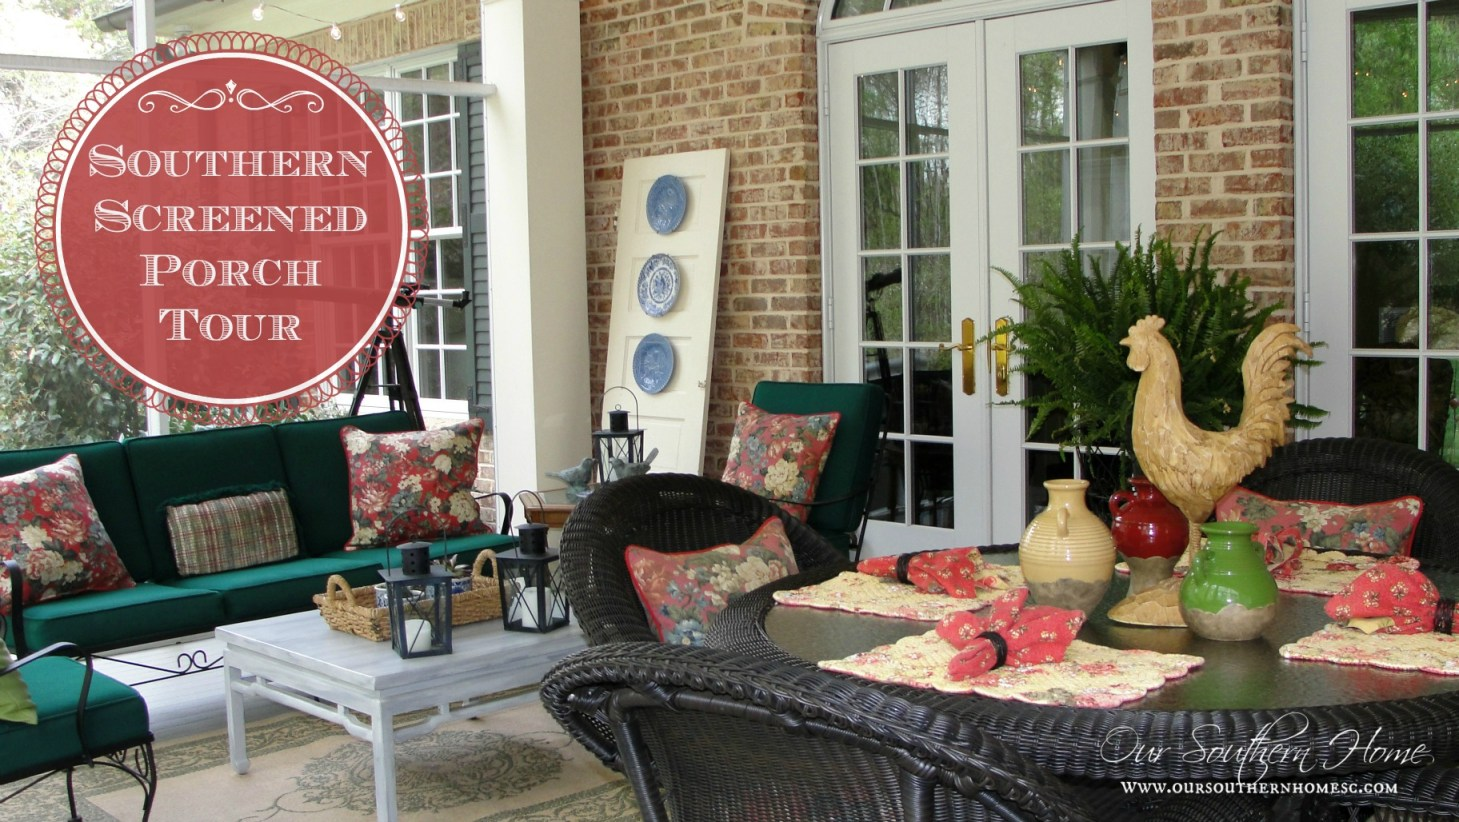 southern screened porch tour